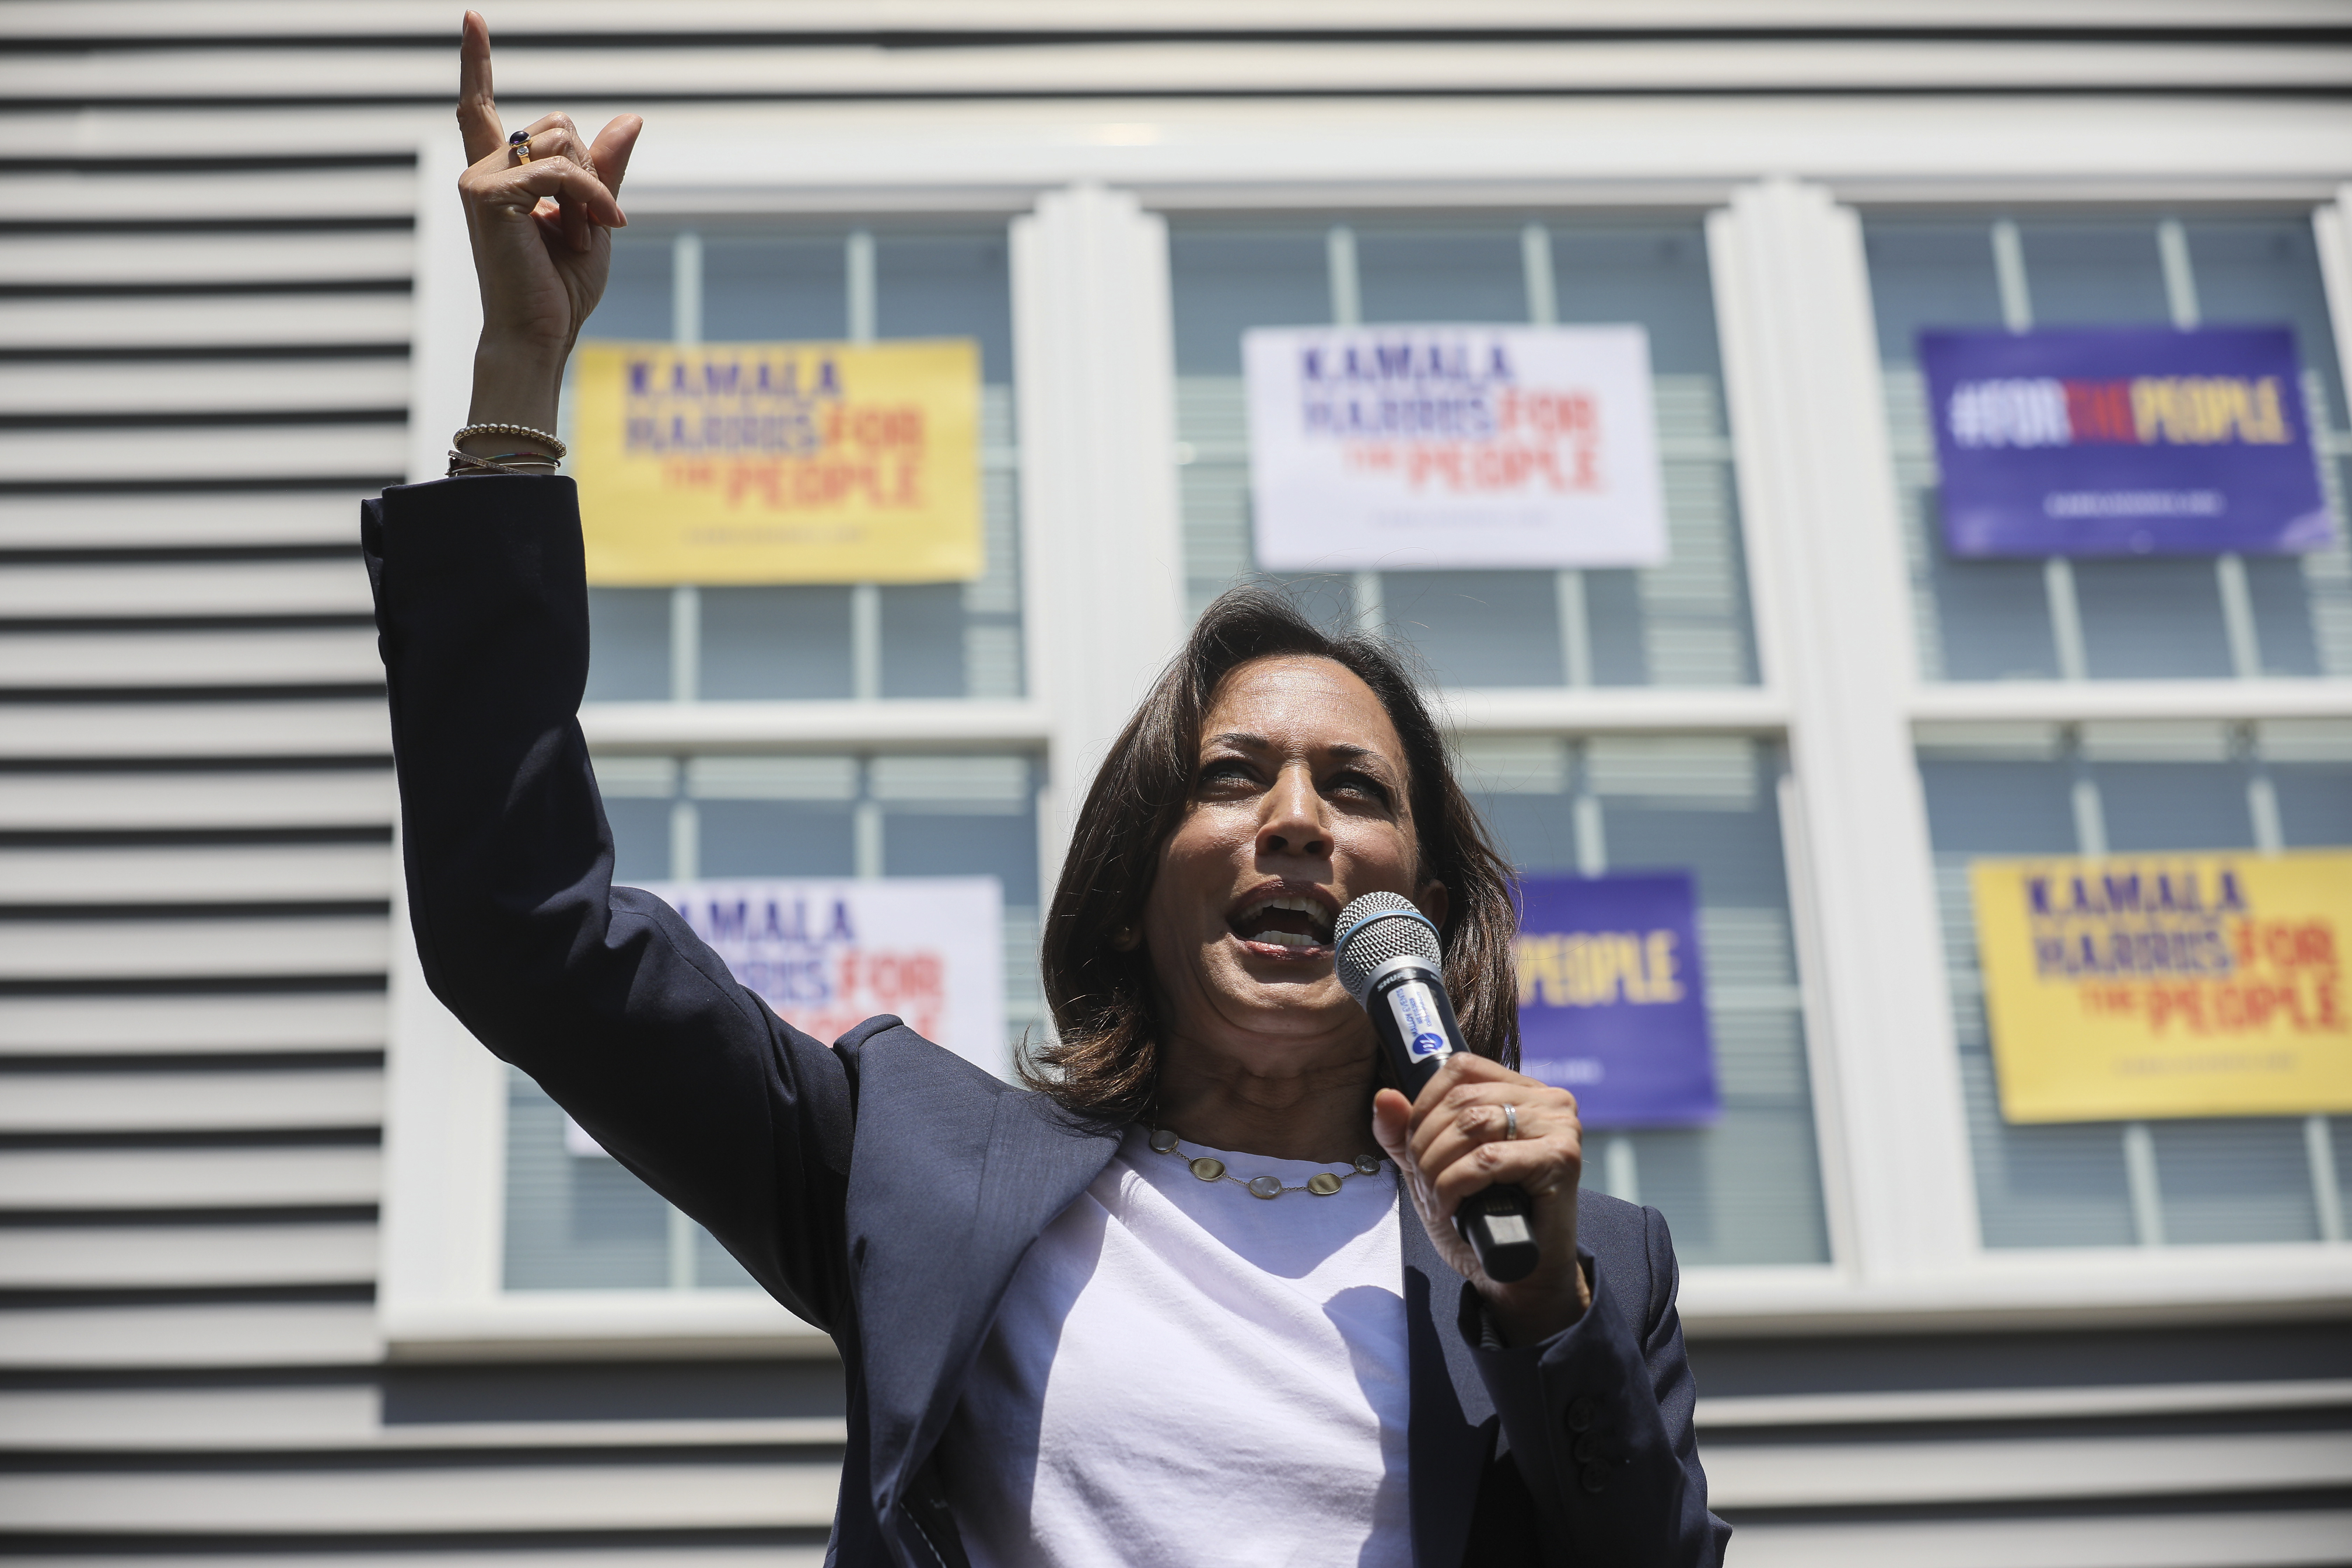 Harris blasts, and takes money from, Epsteins law firm